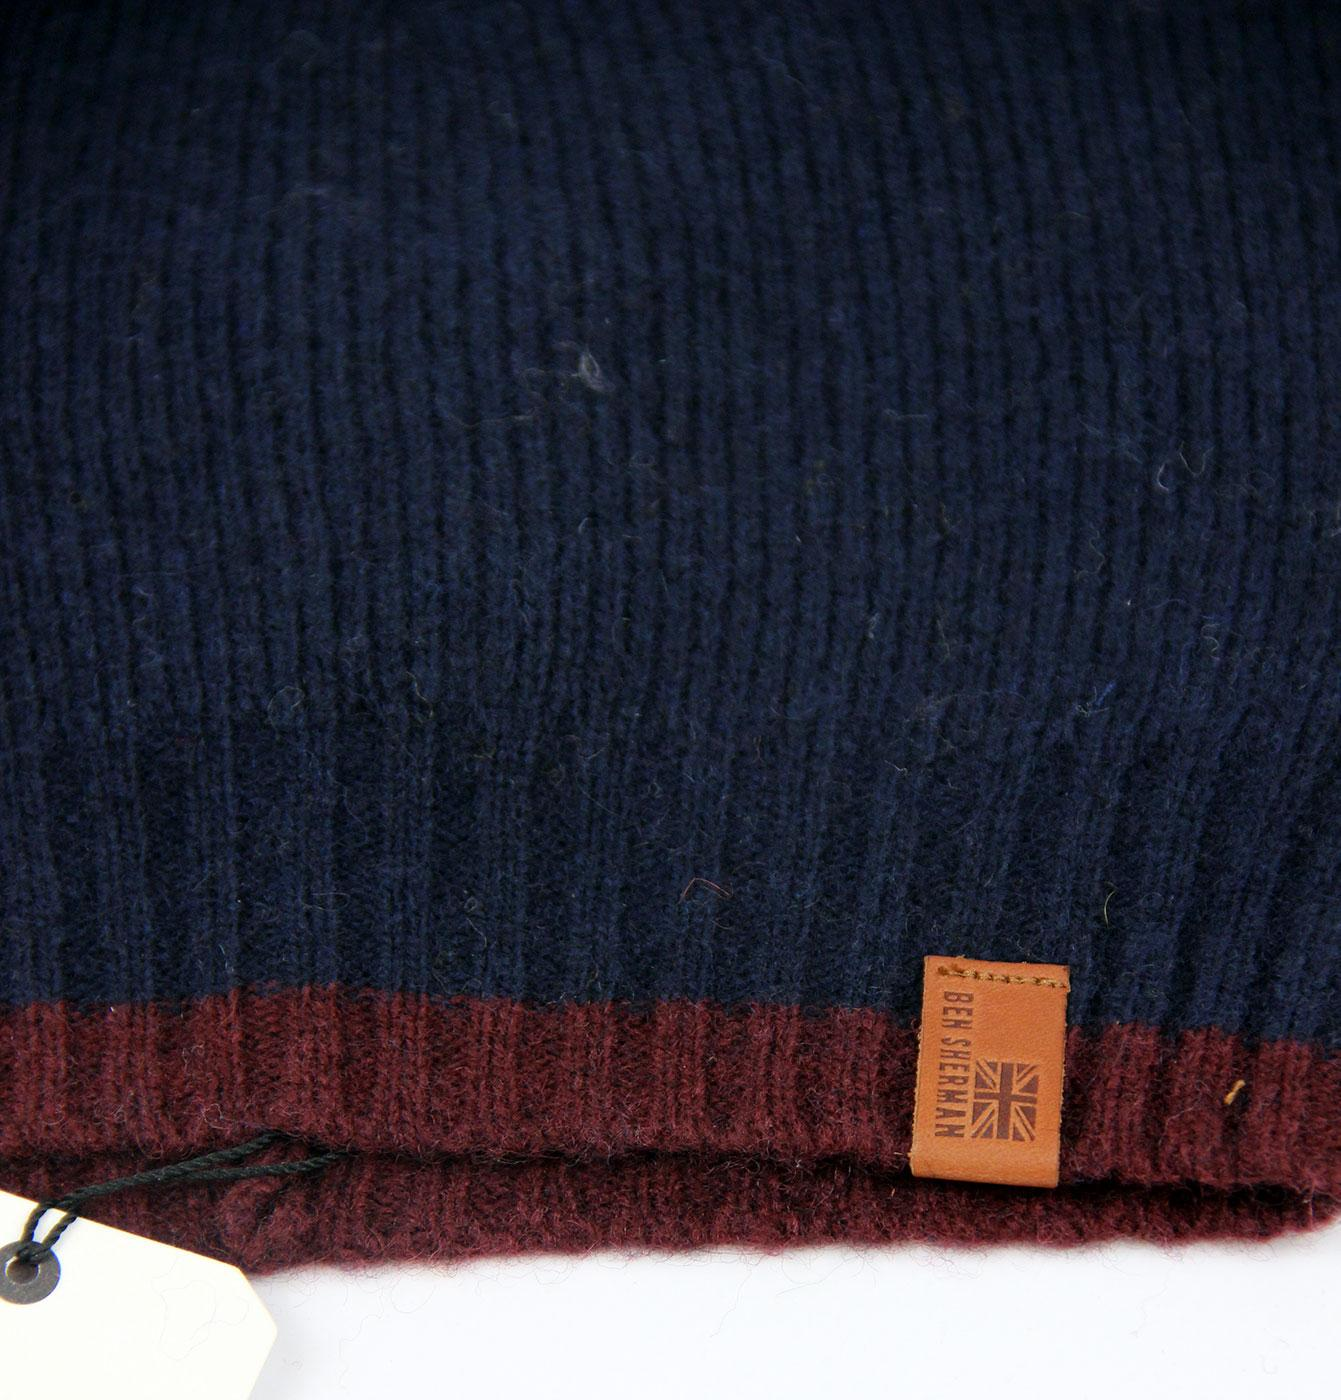 669cb4ae85bcd BEN SHERMAN Retro 70s Indie Tipped Wool Blend Beanie Hat in Navy